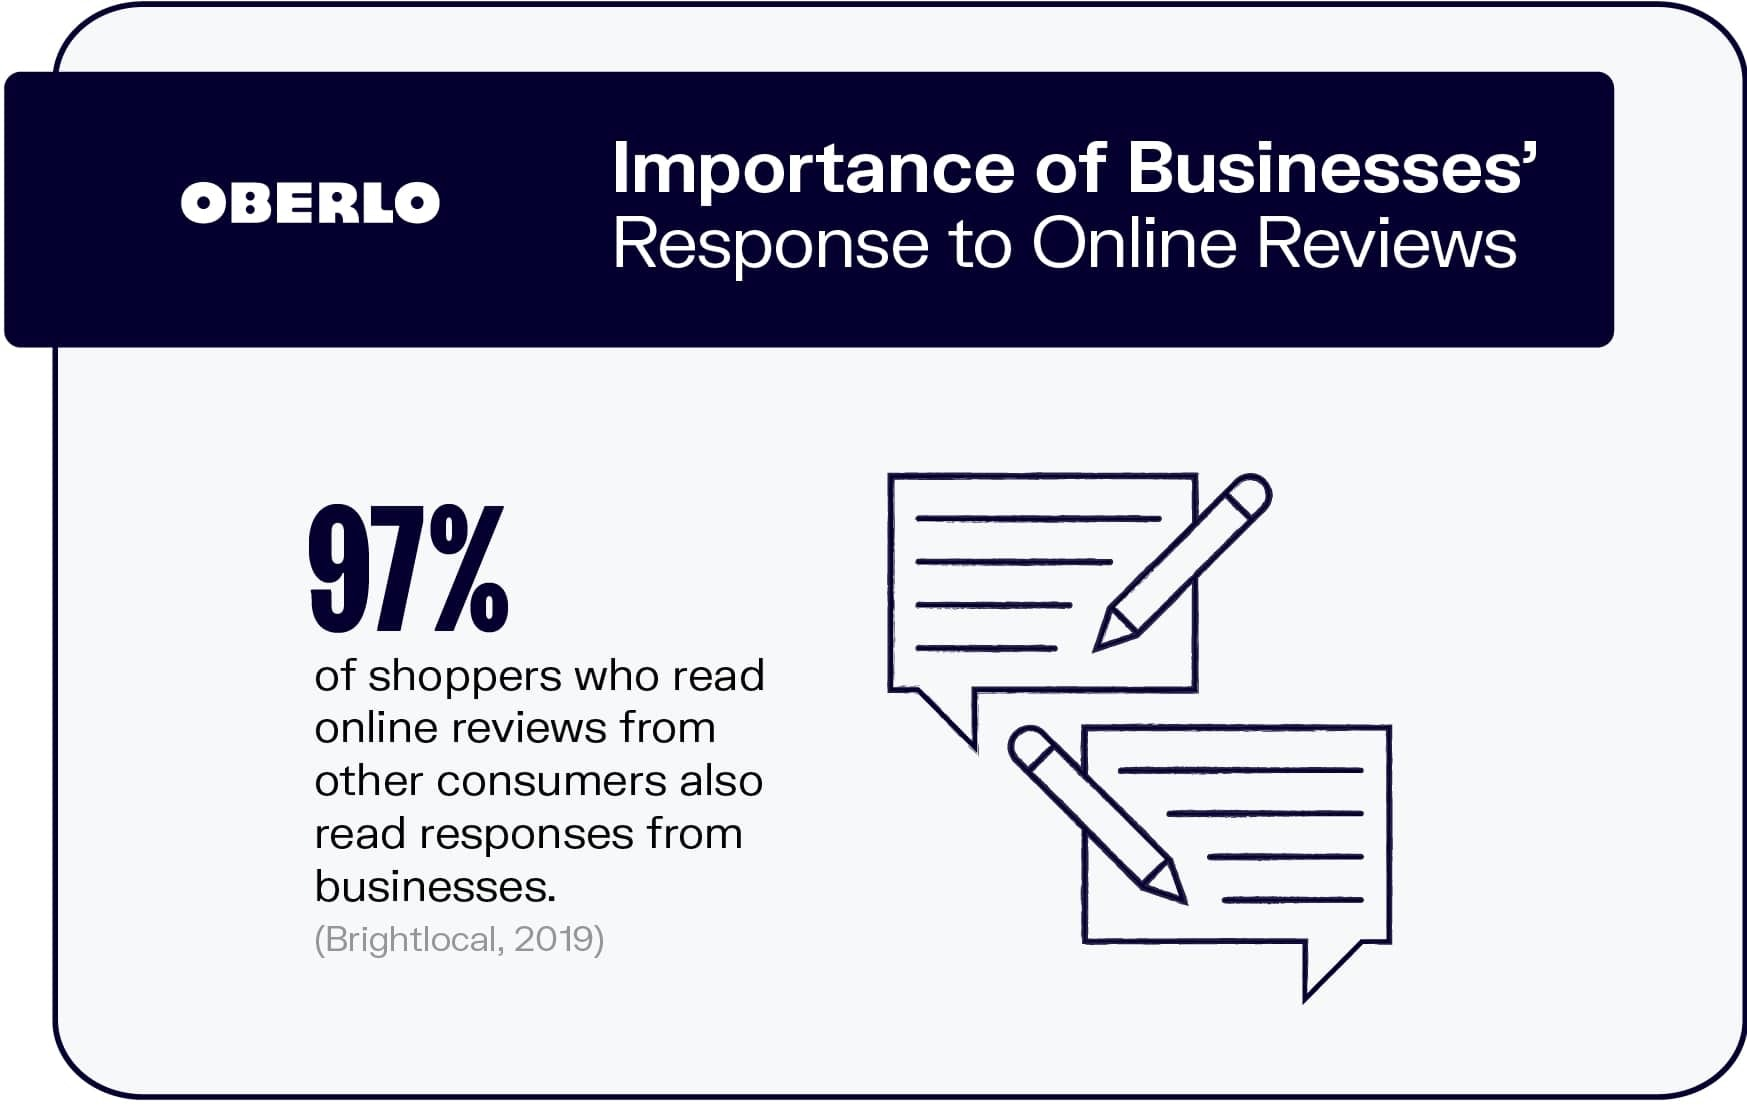 Importance of Businesses' Response to Online Reviews